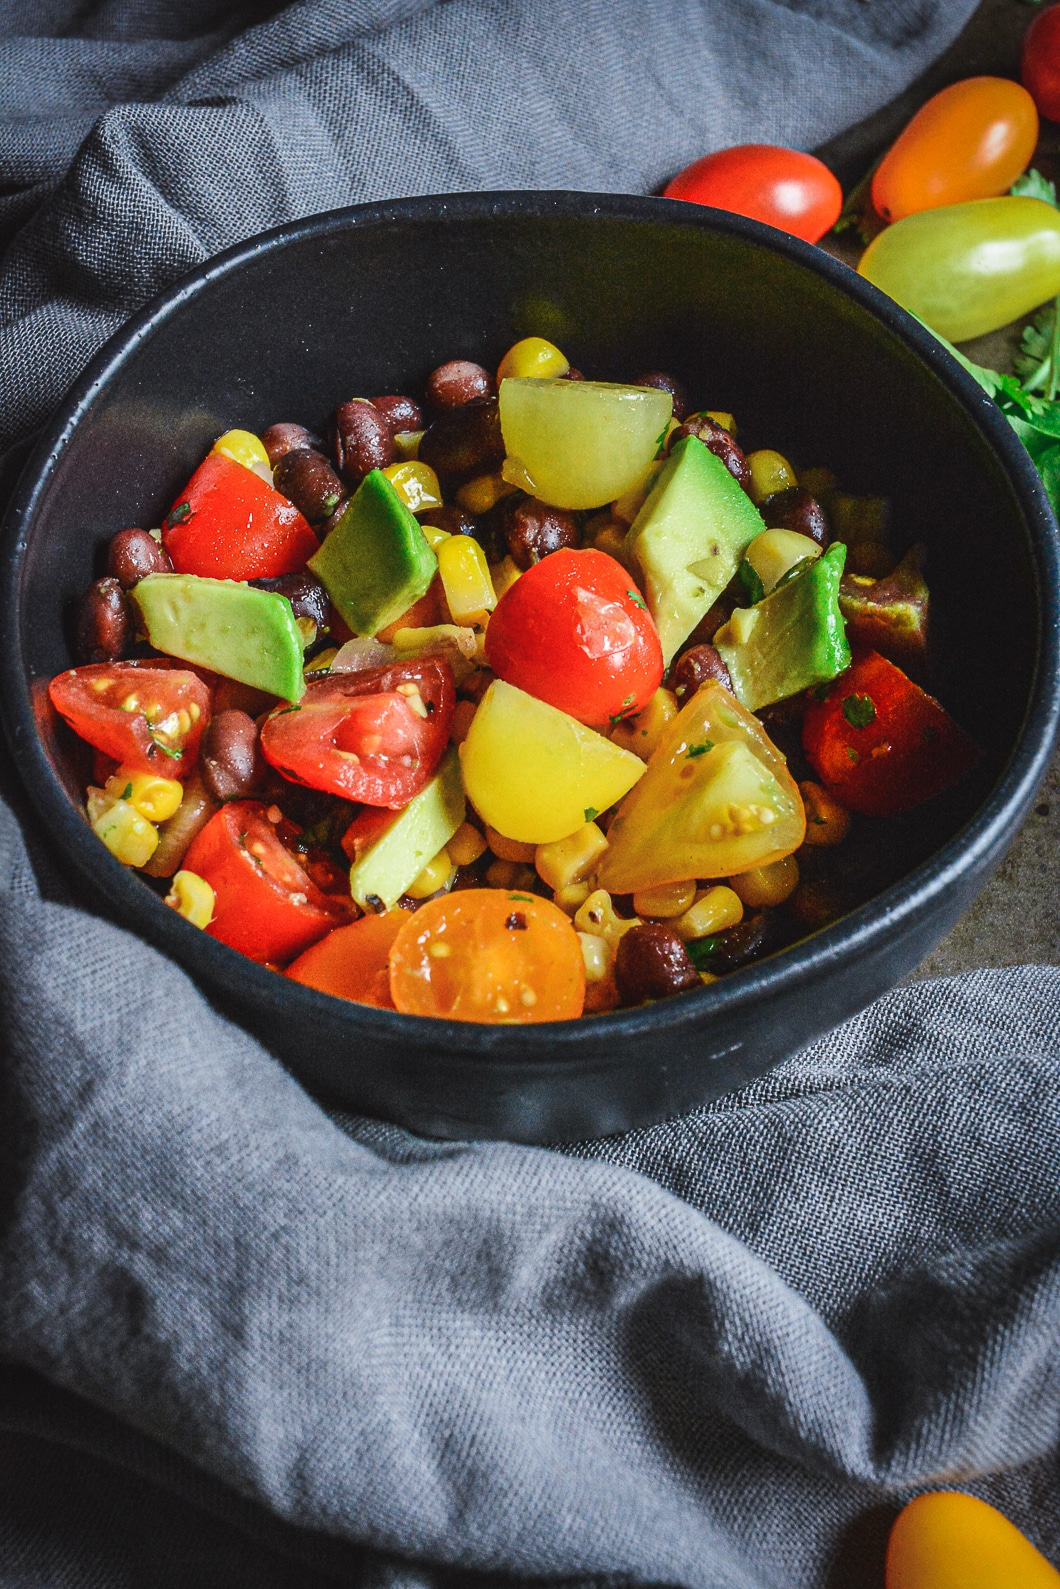 Mexican Tomato Salad with Black Beans, Corn, and Avocado in black bowl with tomatoes